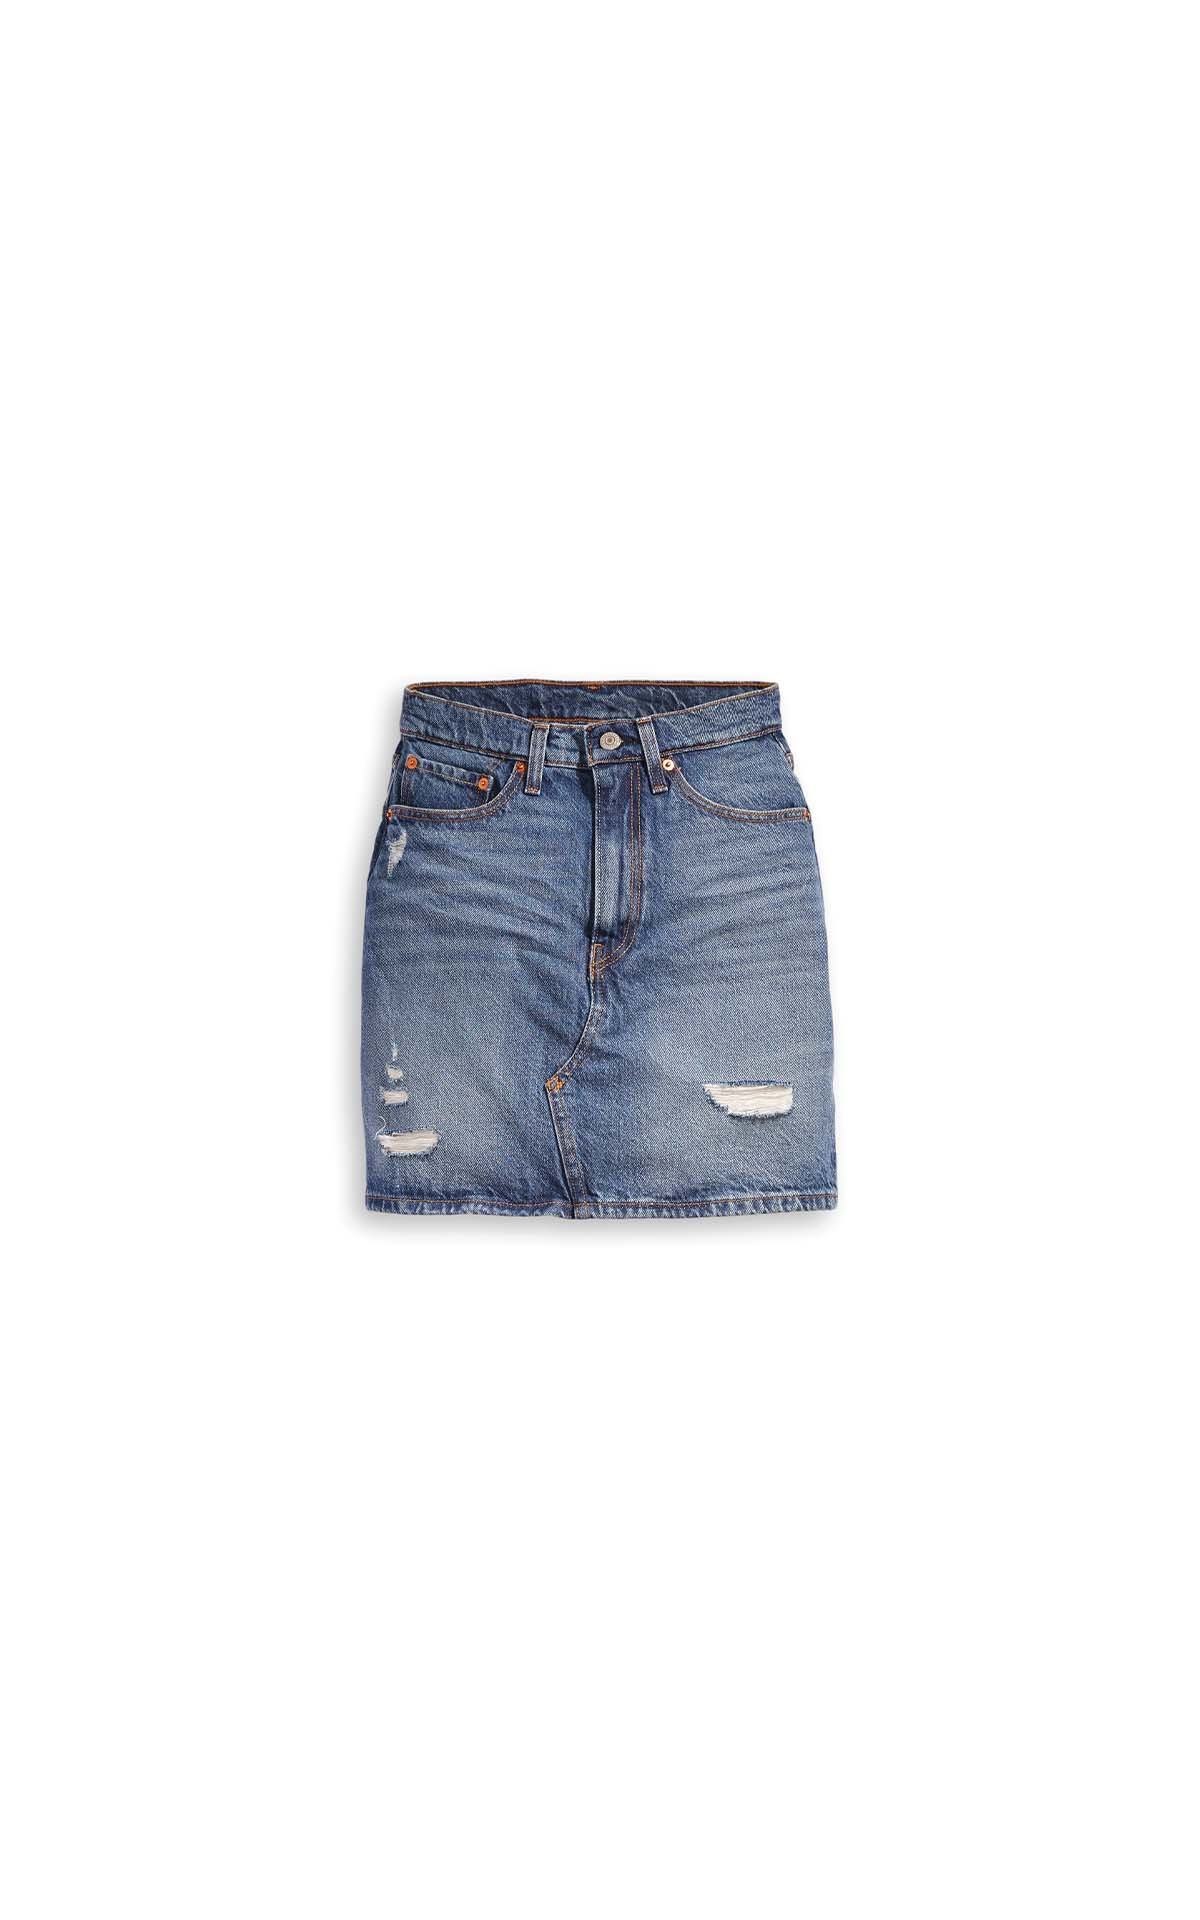 Levi's HR decon iconic skirt middle avenue at The Bicester Village Shopping Collection